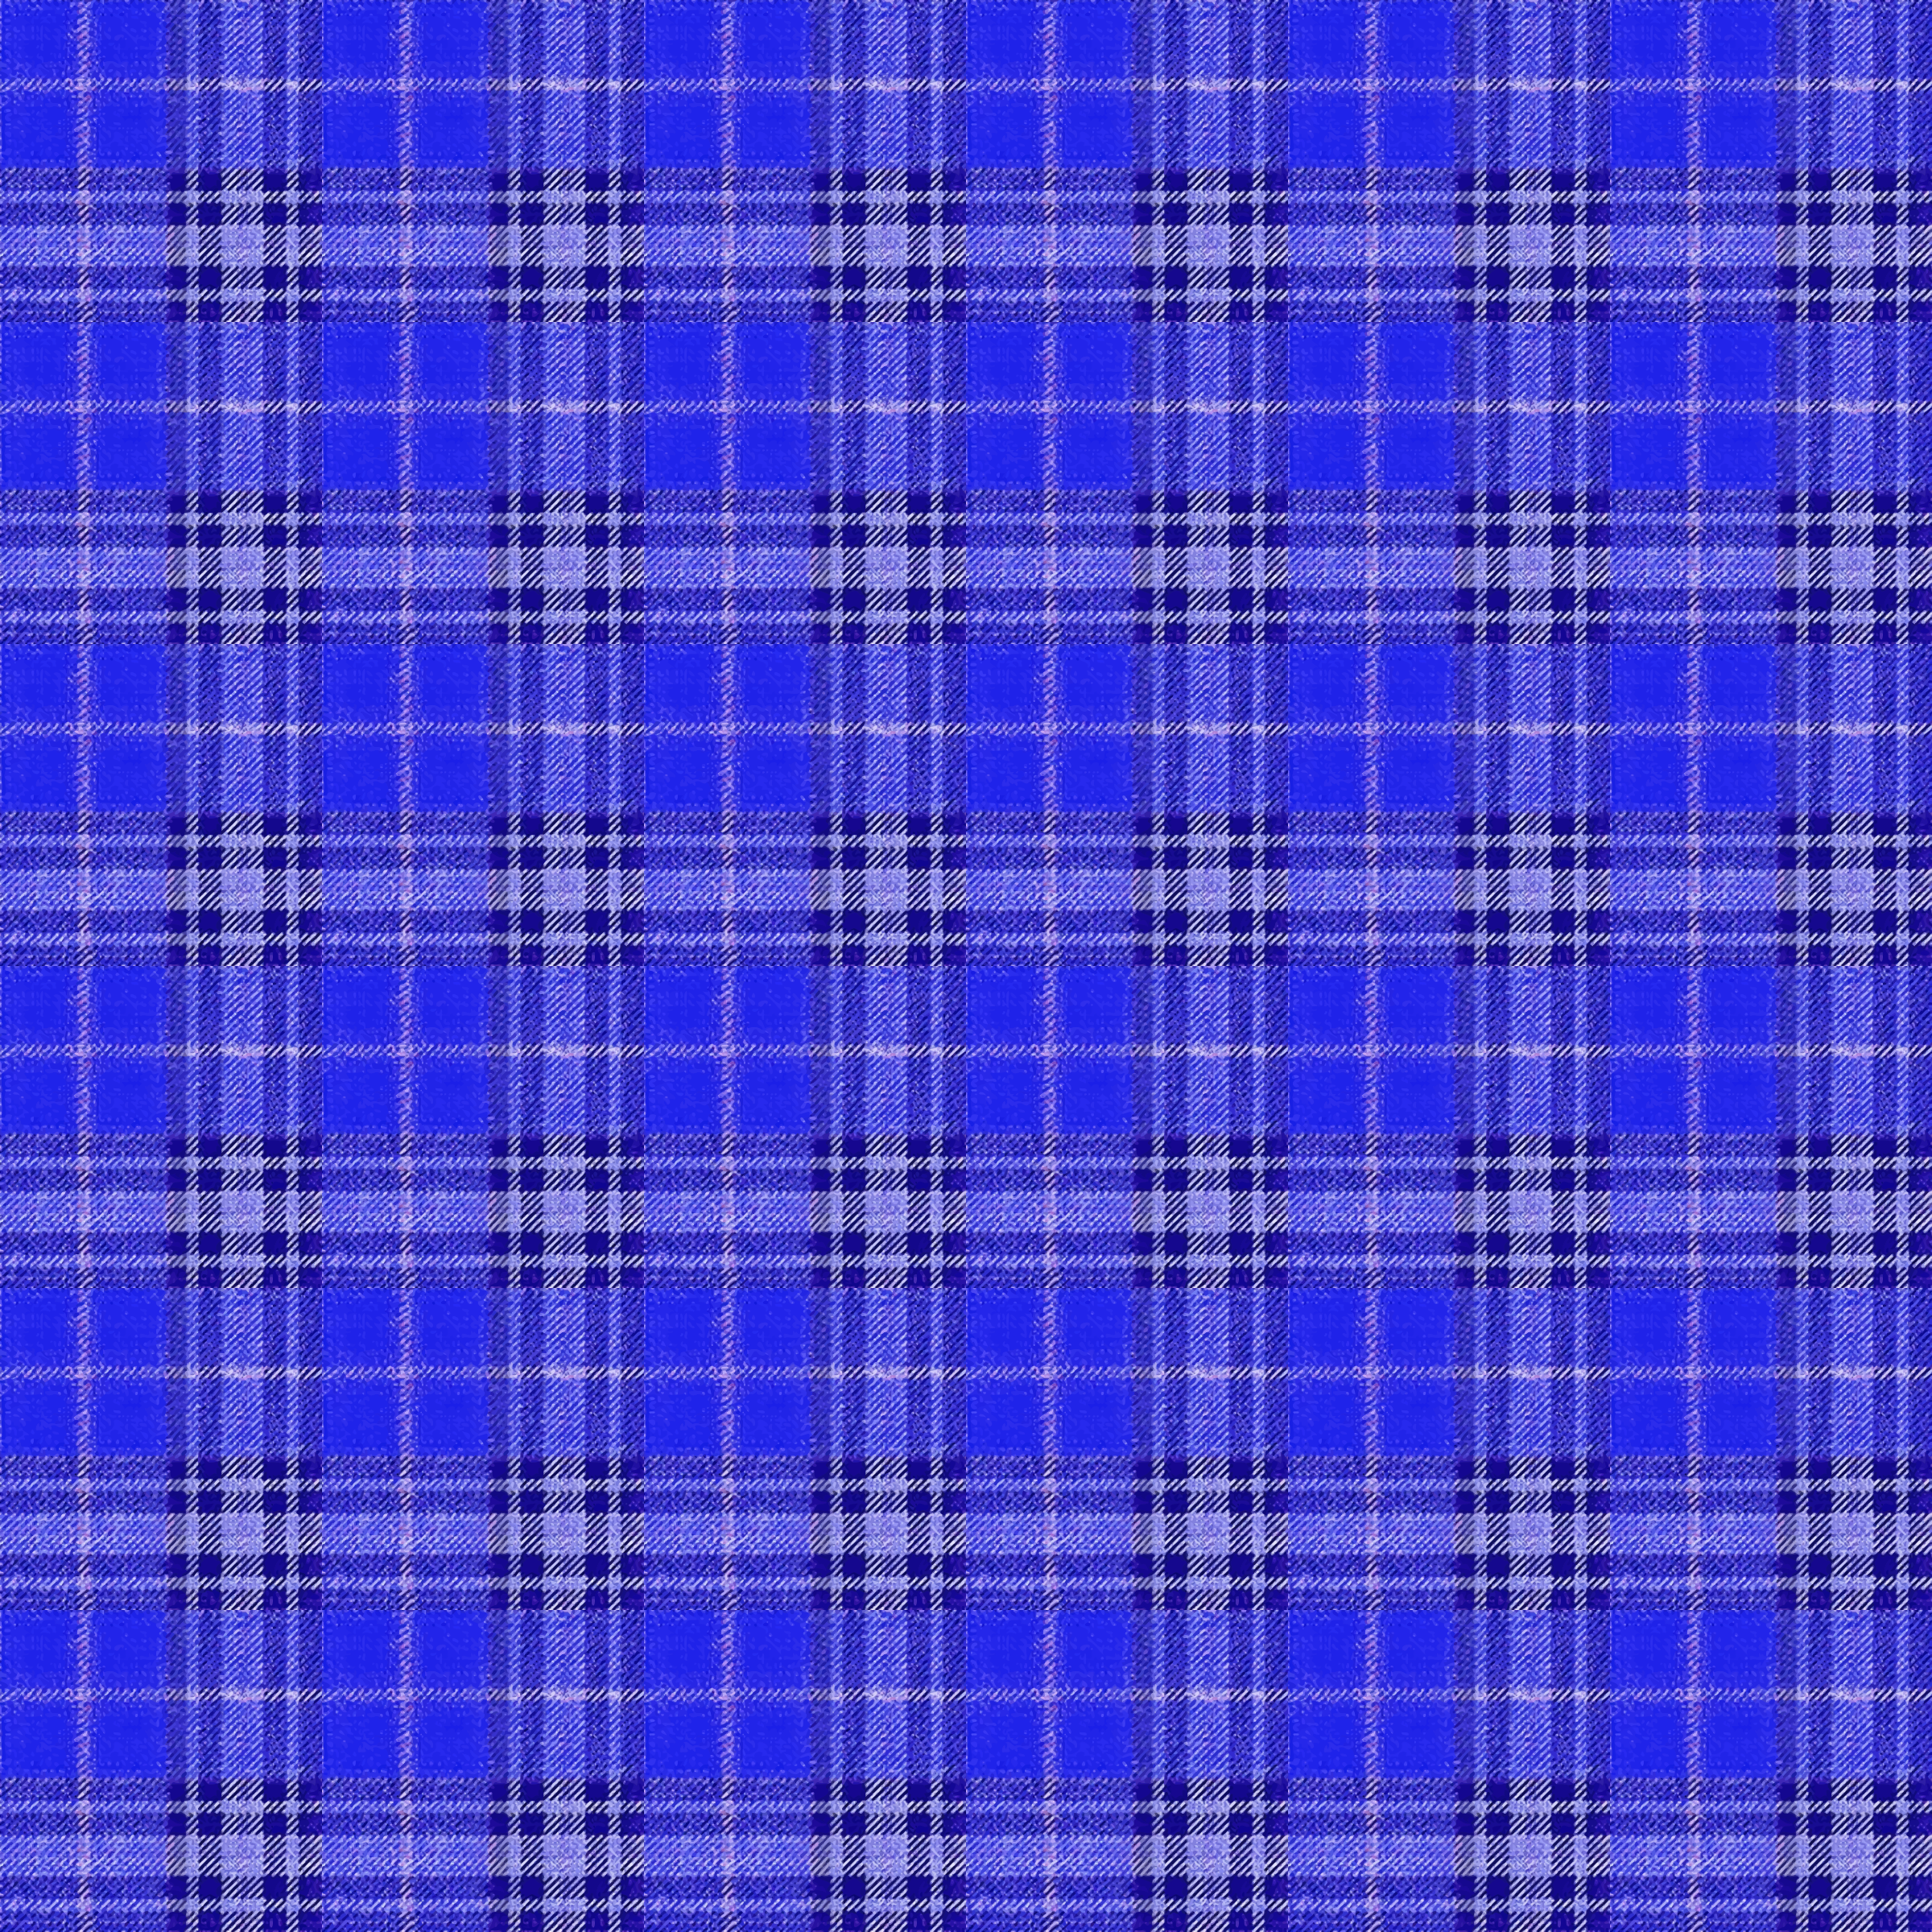 Chequered tablecloth 2 (colour 3) by Firkin